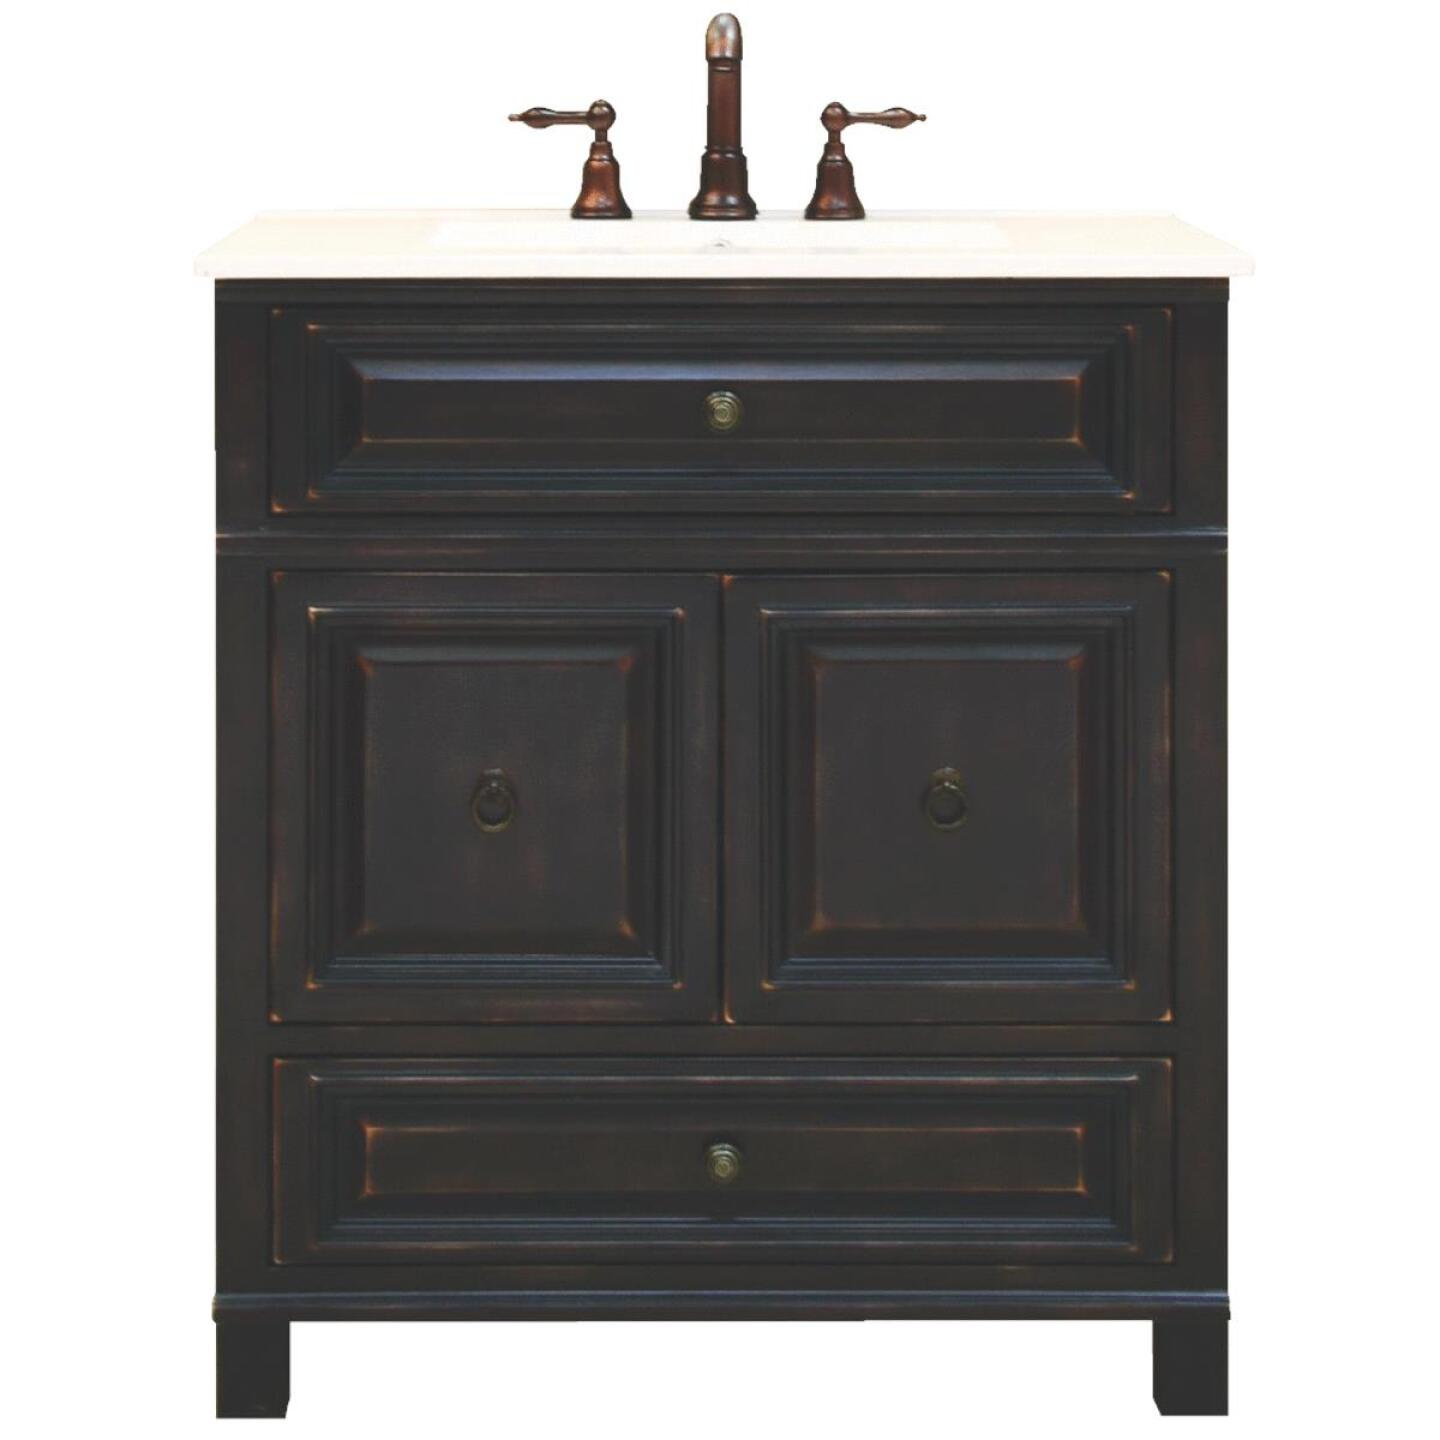 Sunny Wood Barton Hill Black Onyx 30 In. W x 34 In. H x 21 In. D Vanity Base, 2 Door/1 Drawer Image 269